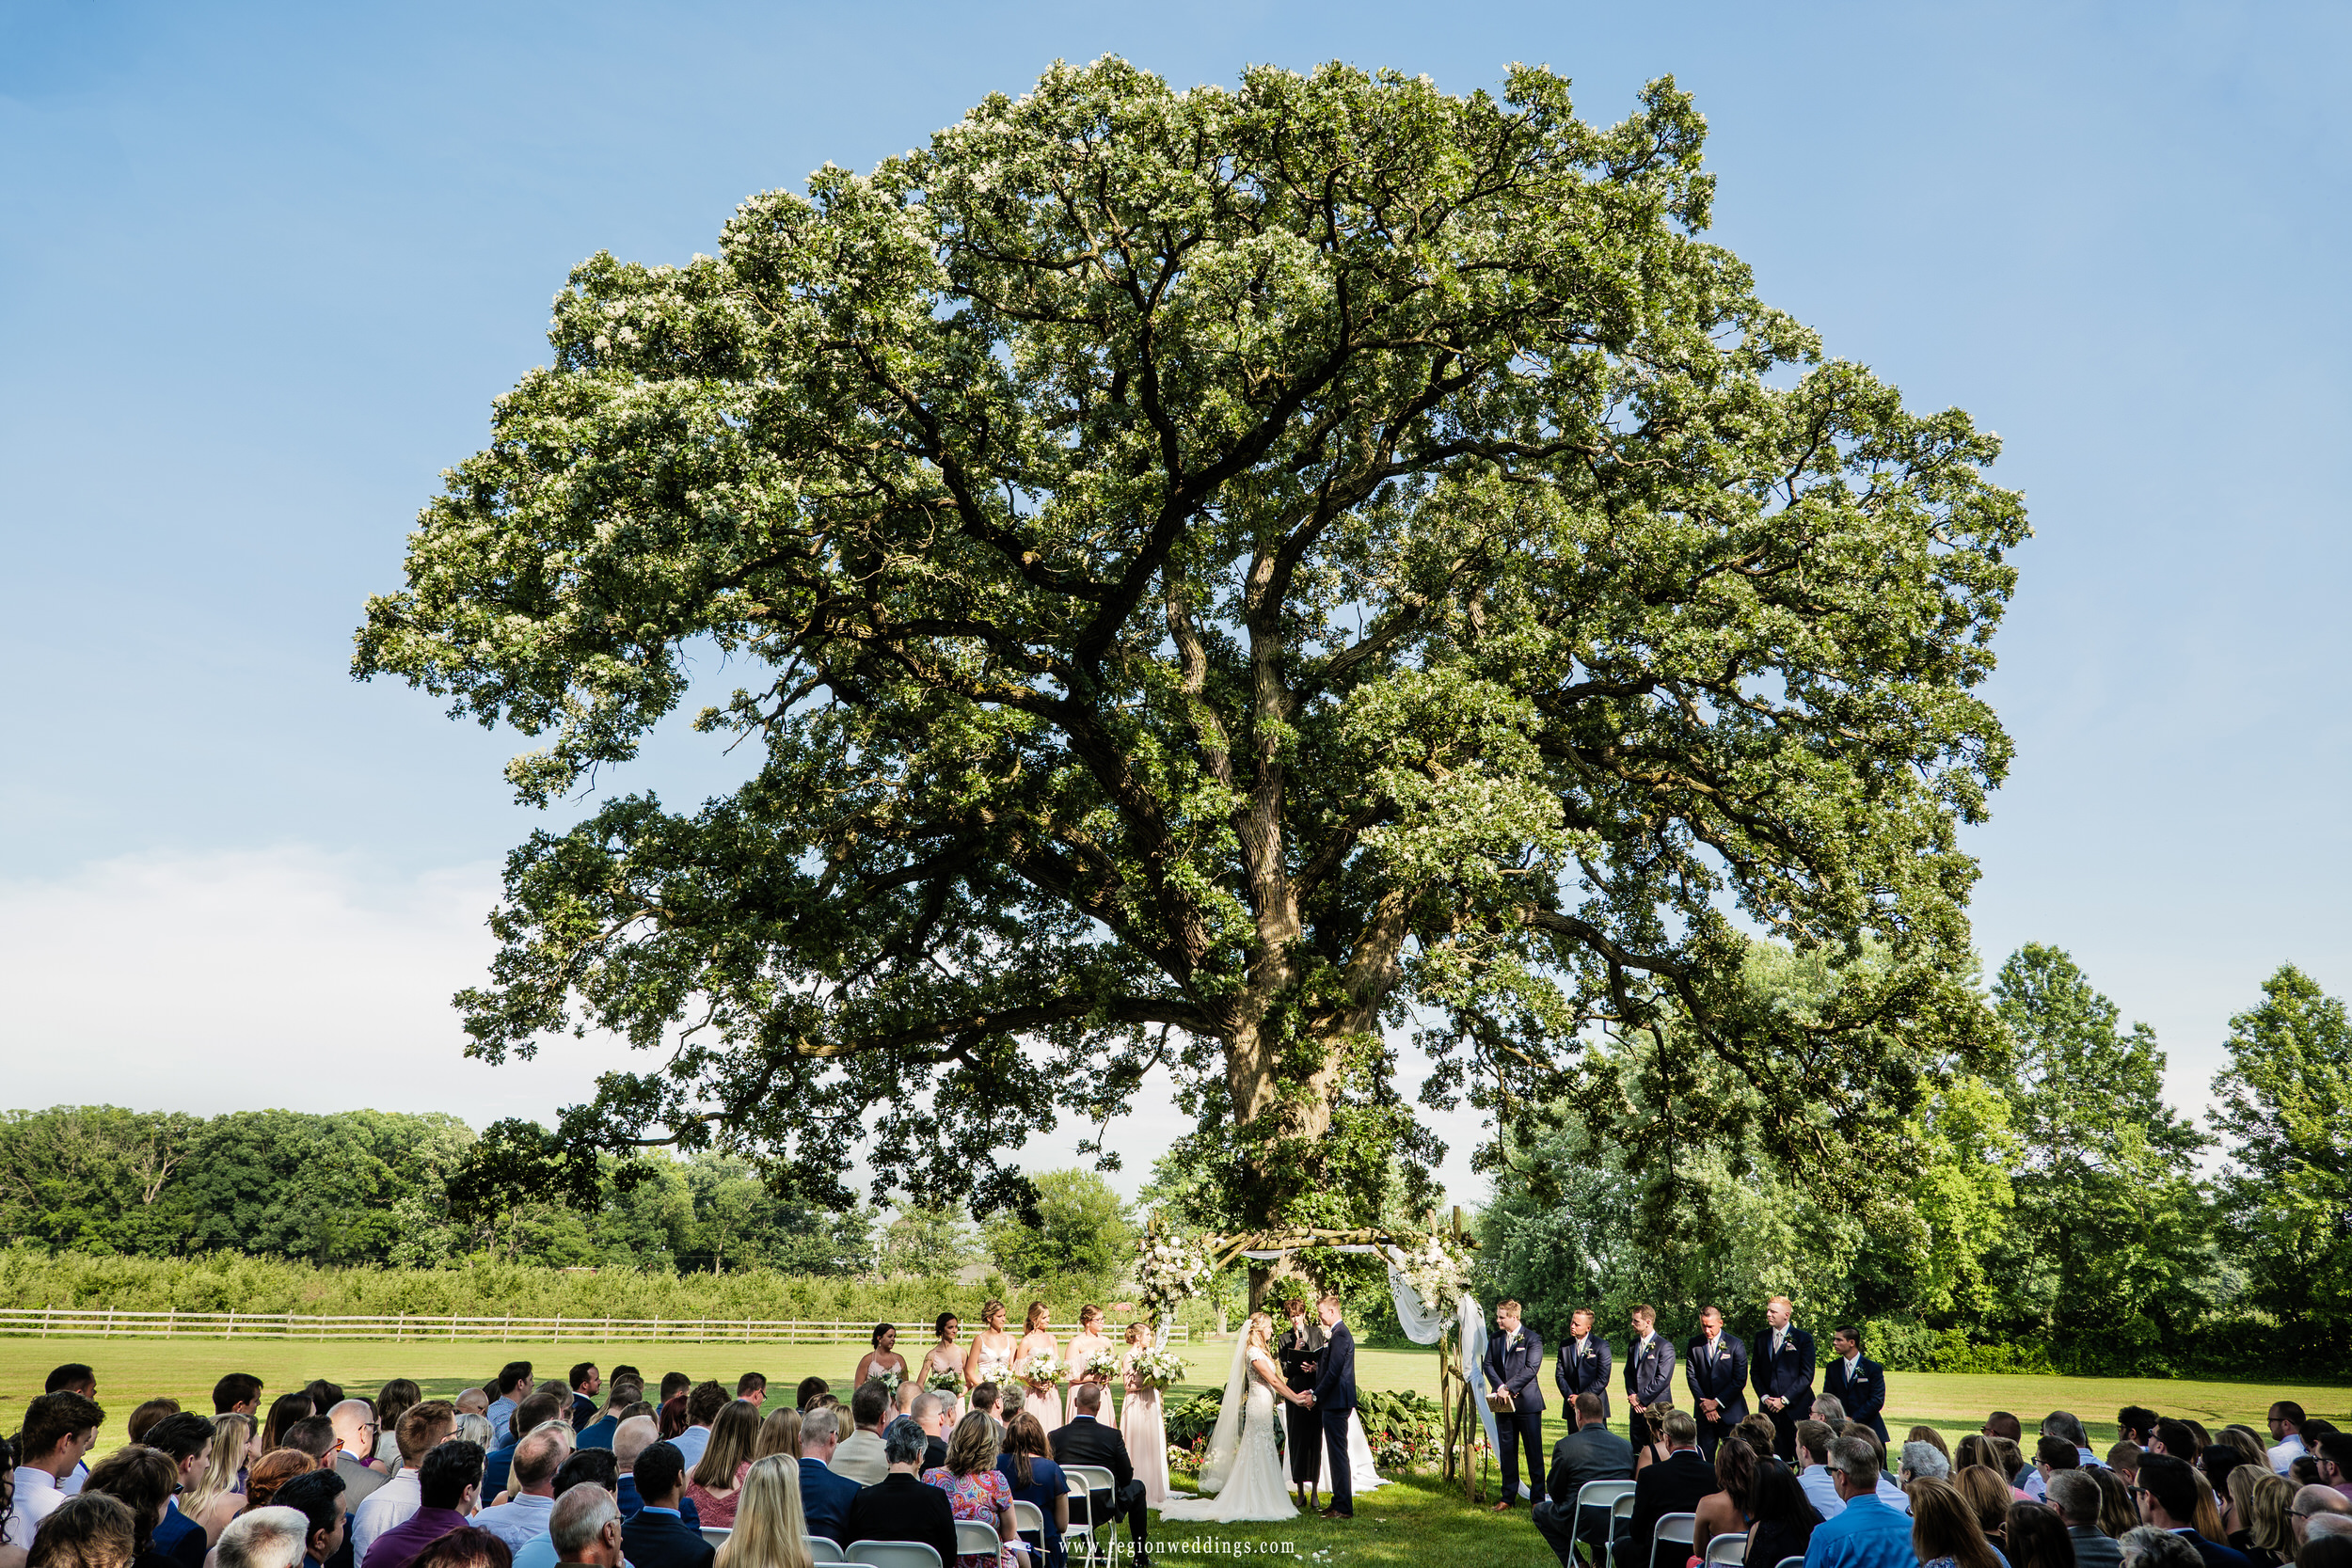 Friends and family watch an outdoor wedding ceremony underneath the big oak tree at County Line Orchard.